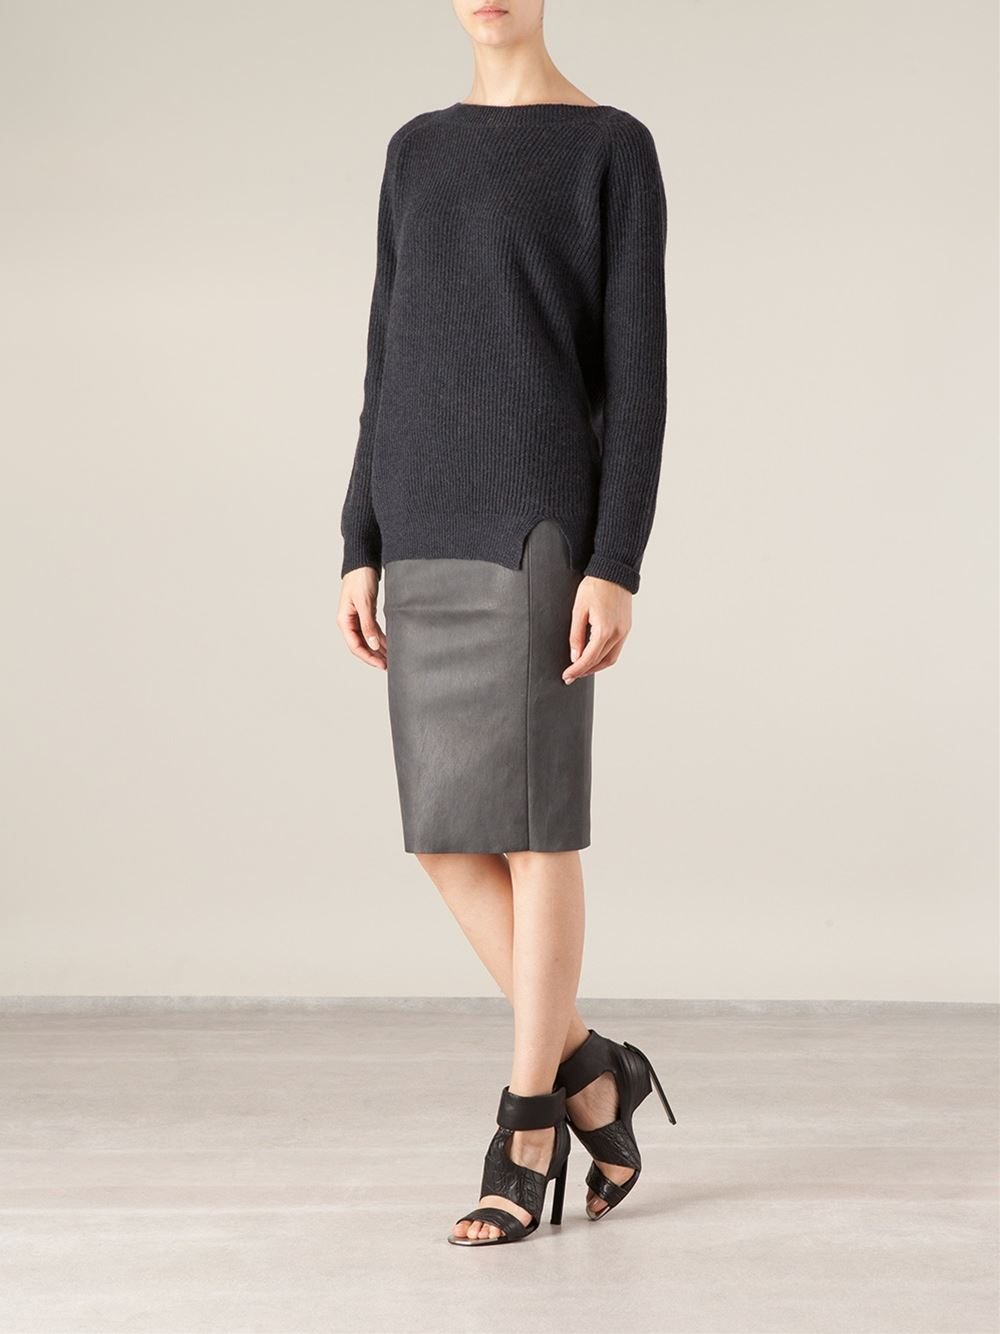 Stouls Leather Pencil Skirt in Gray | Lyst